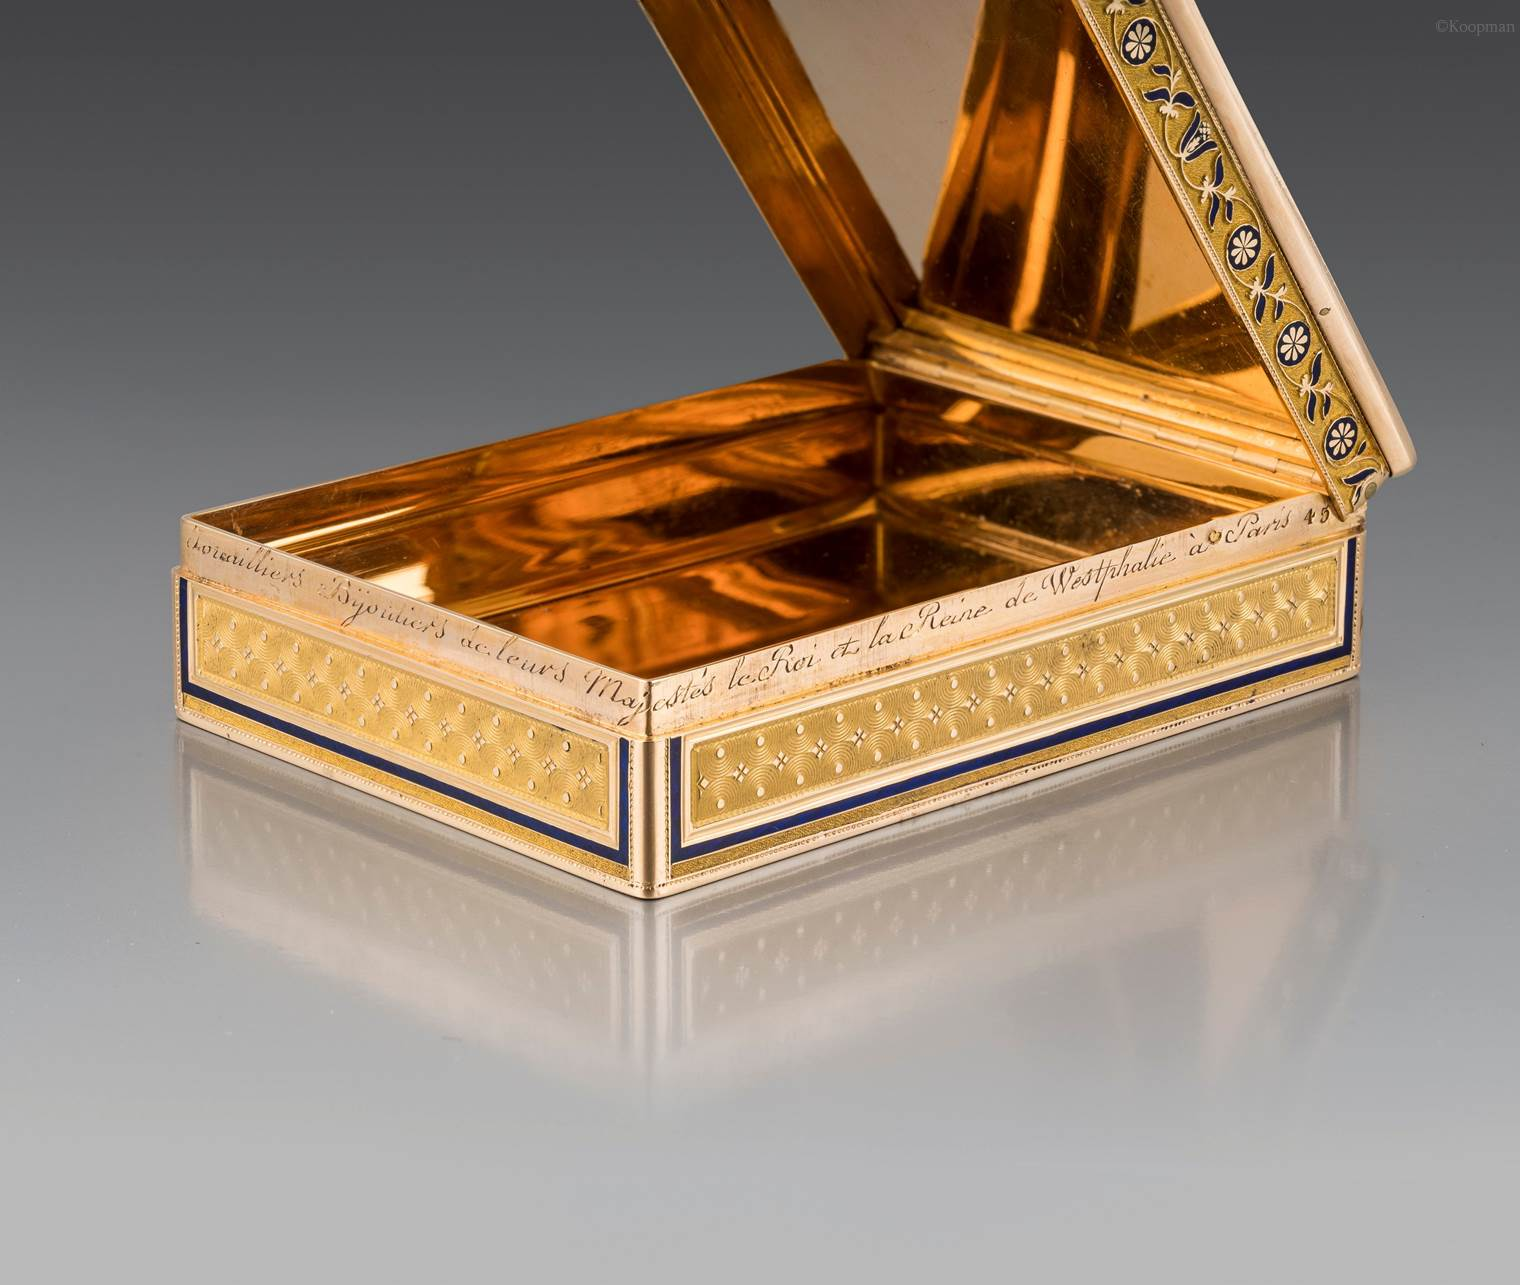 A Two-Colour Gold and Enamel Presentation Snuff Box